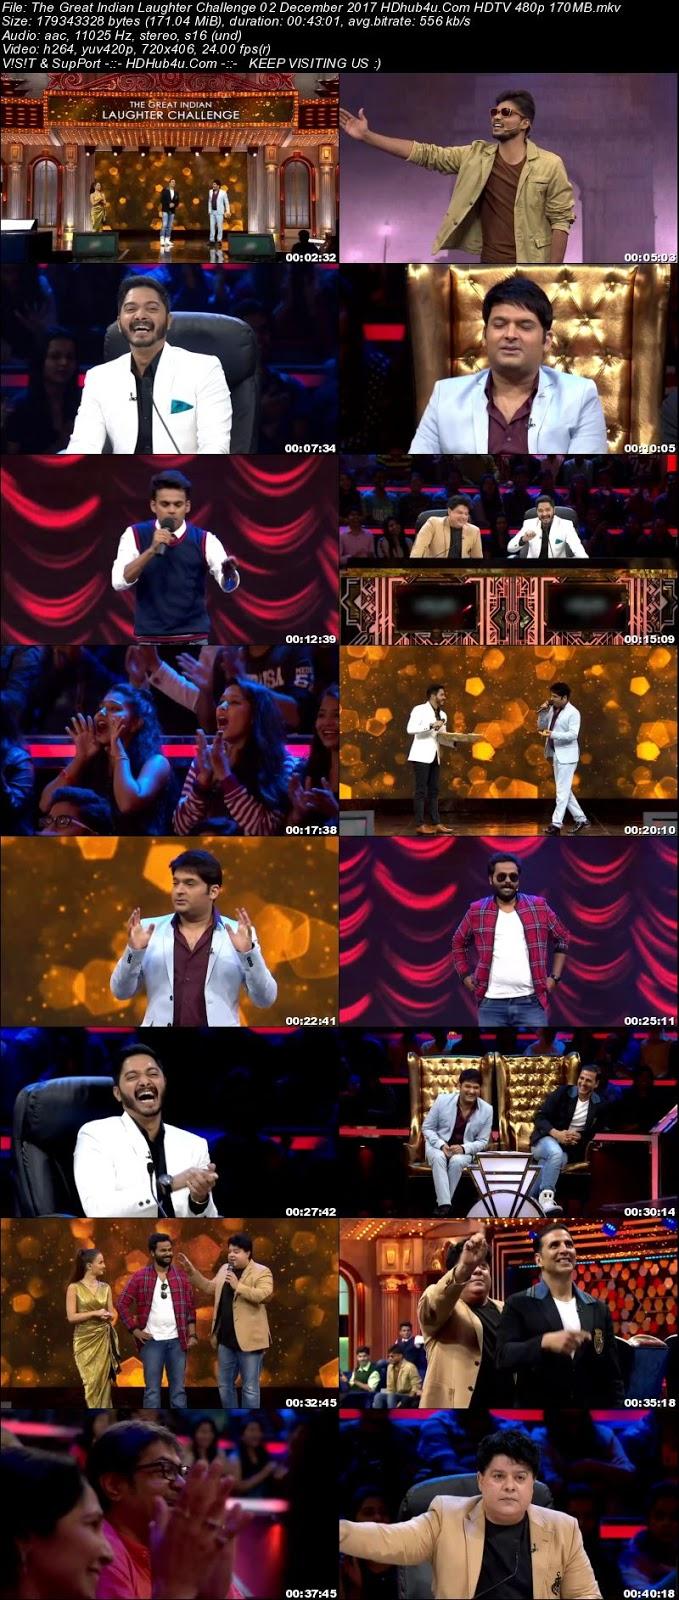 The Great Indian Laughter Challenge 02 December 480p HDTV 170MB Download